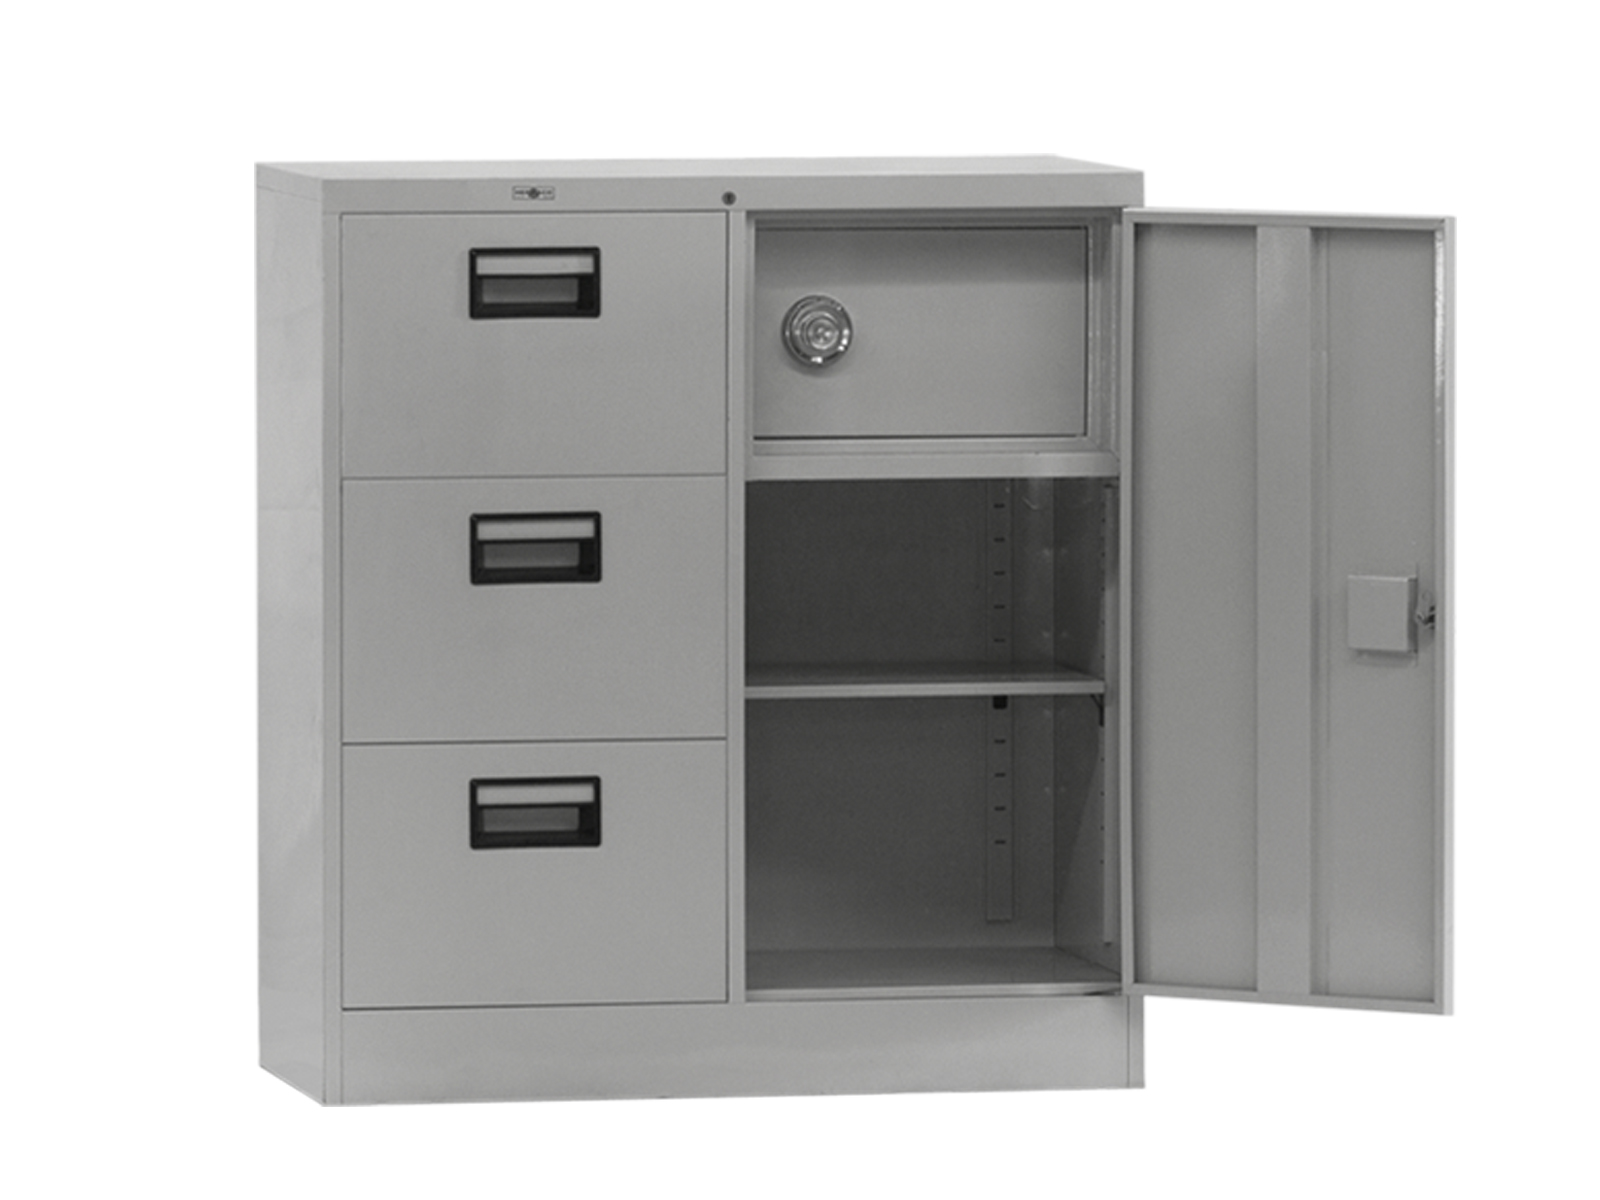 Steel Merchant File Safe Cabinet | HERMACO COMMERCIAL INC.